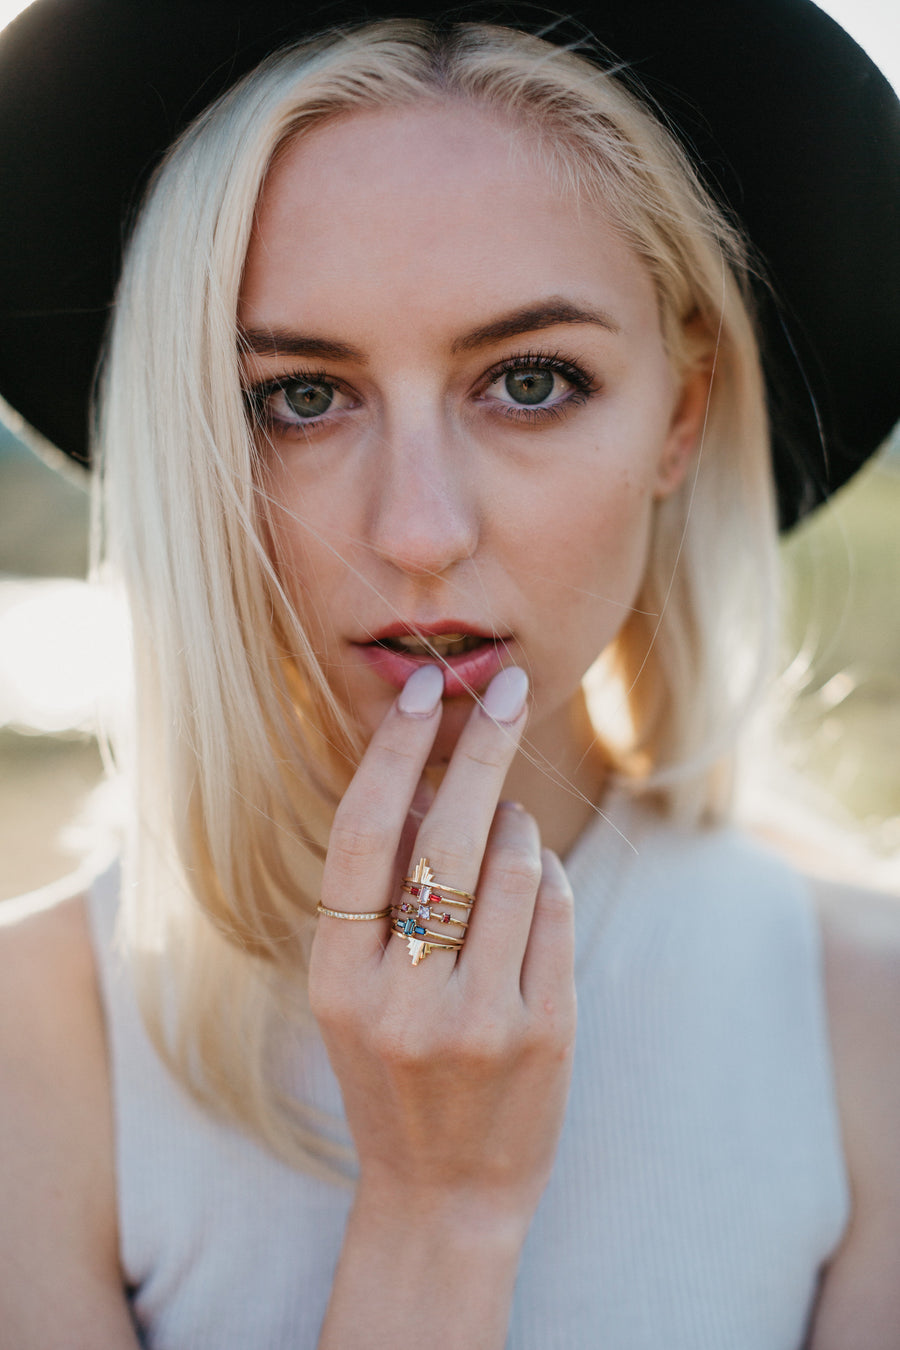 Haley is wearing the Sloane Ring stacked with the Victoria Ring, Kensley Ring and Samara Ring.